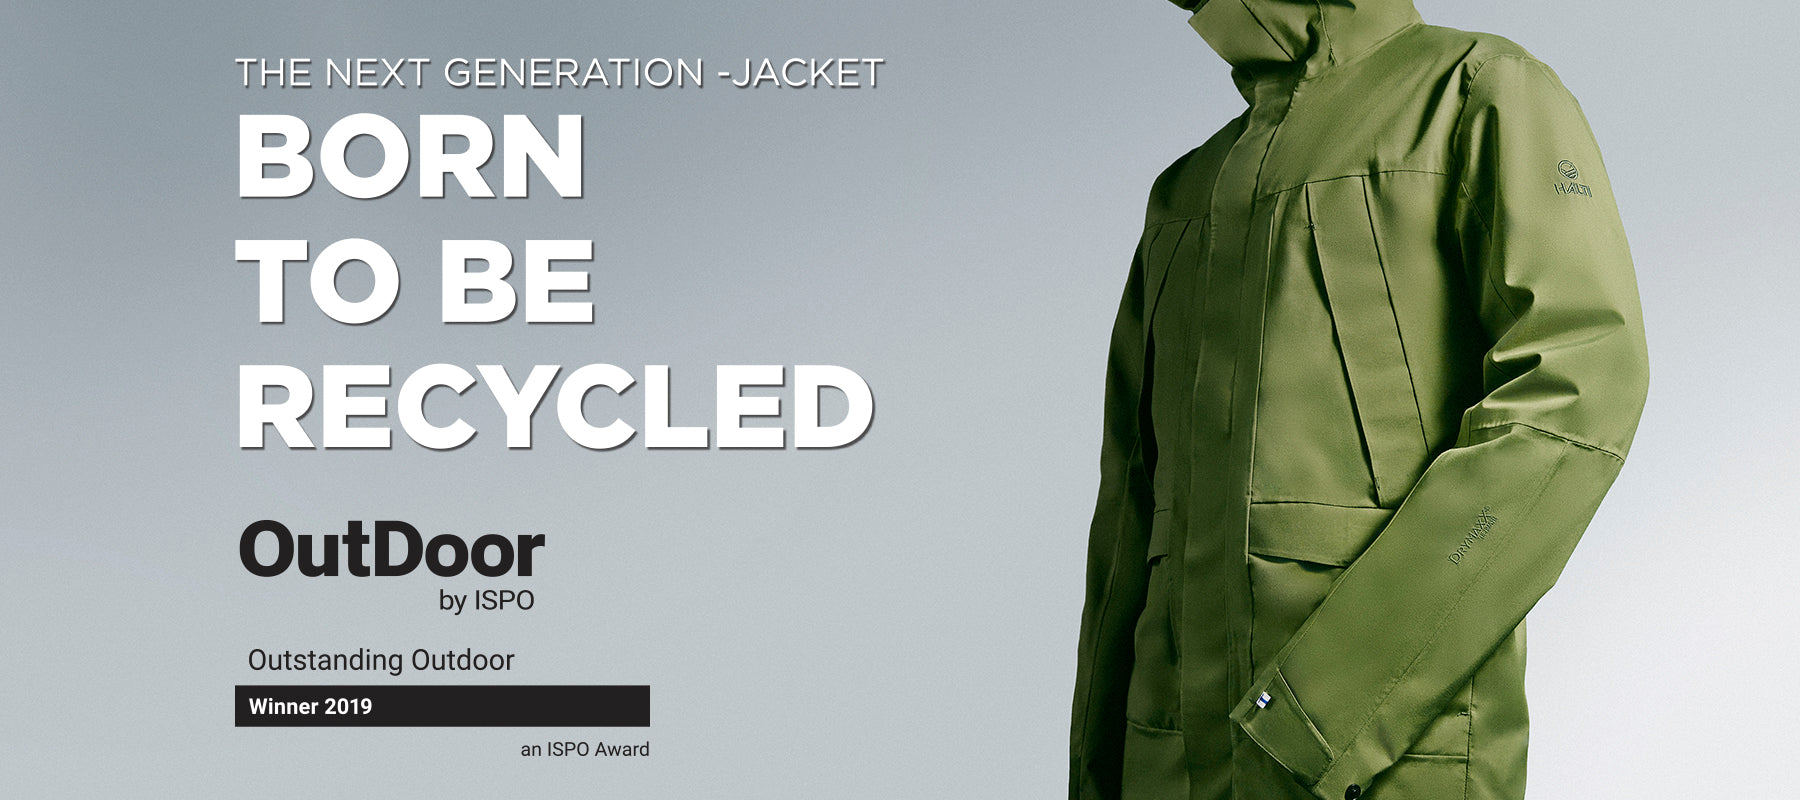 0a60b3cc83bc0 Born to be recycled – Outdoor by ISPO award winner product